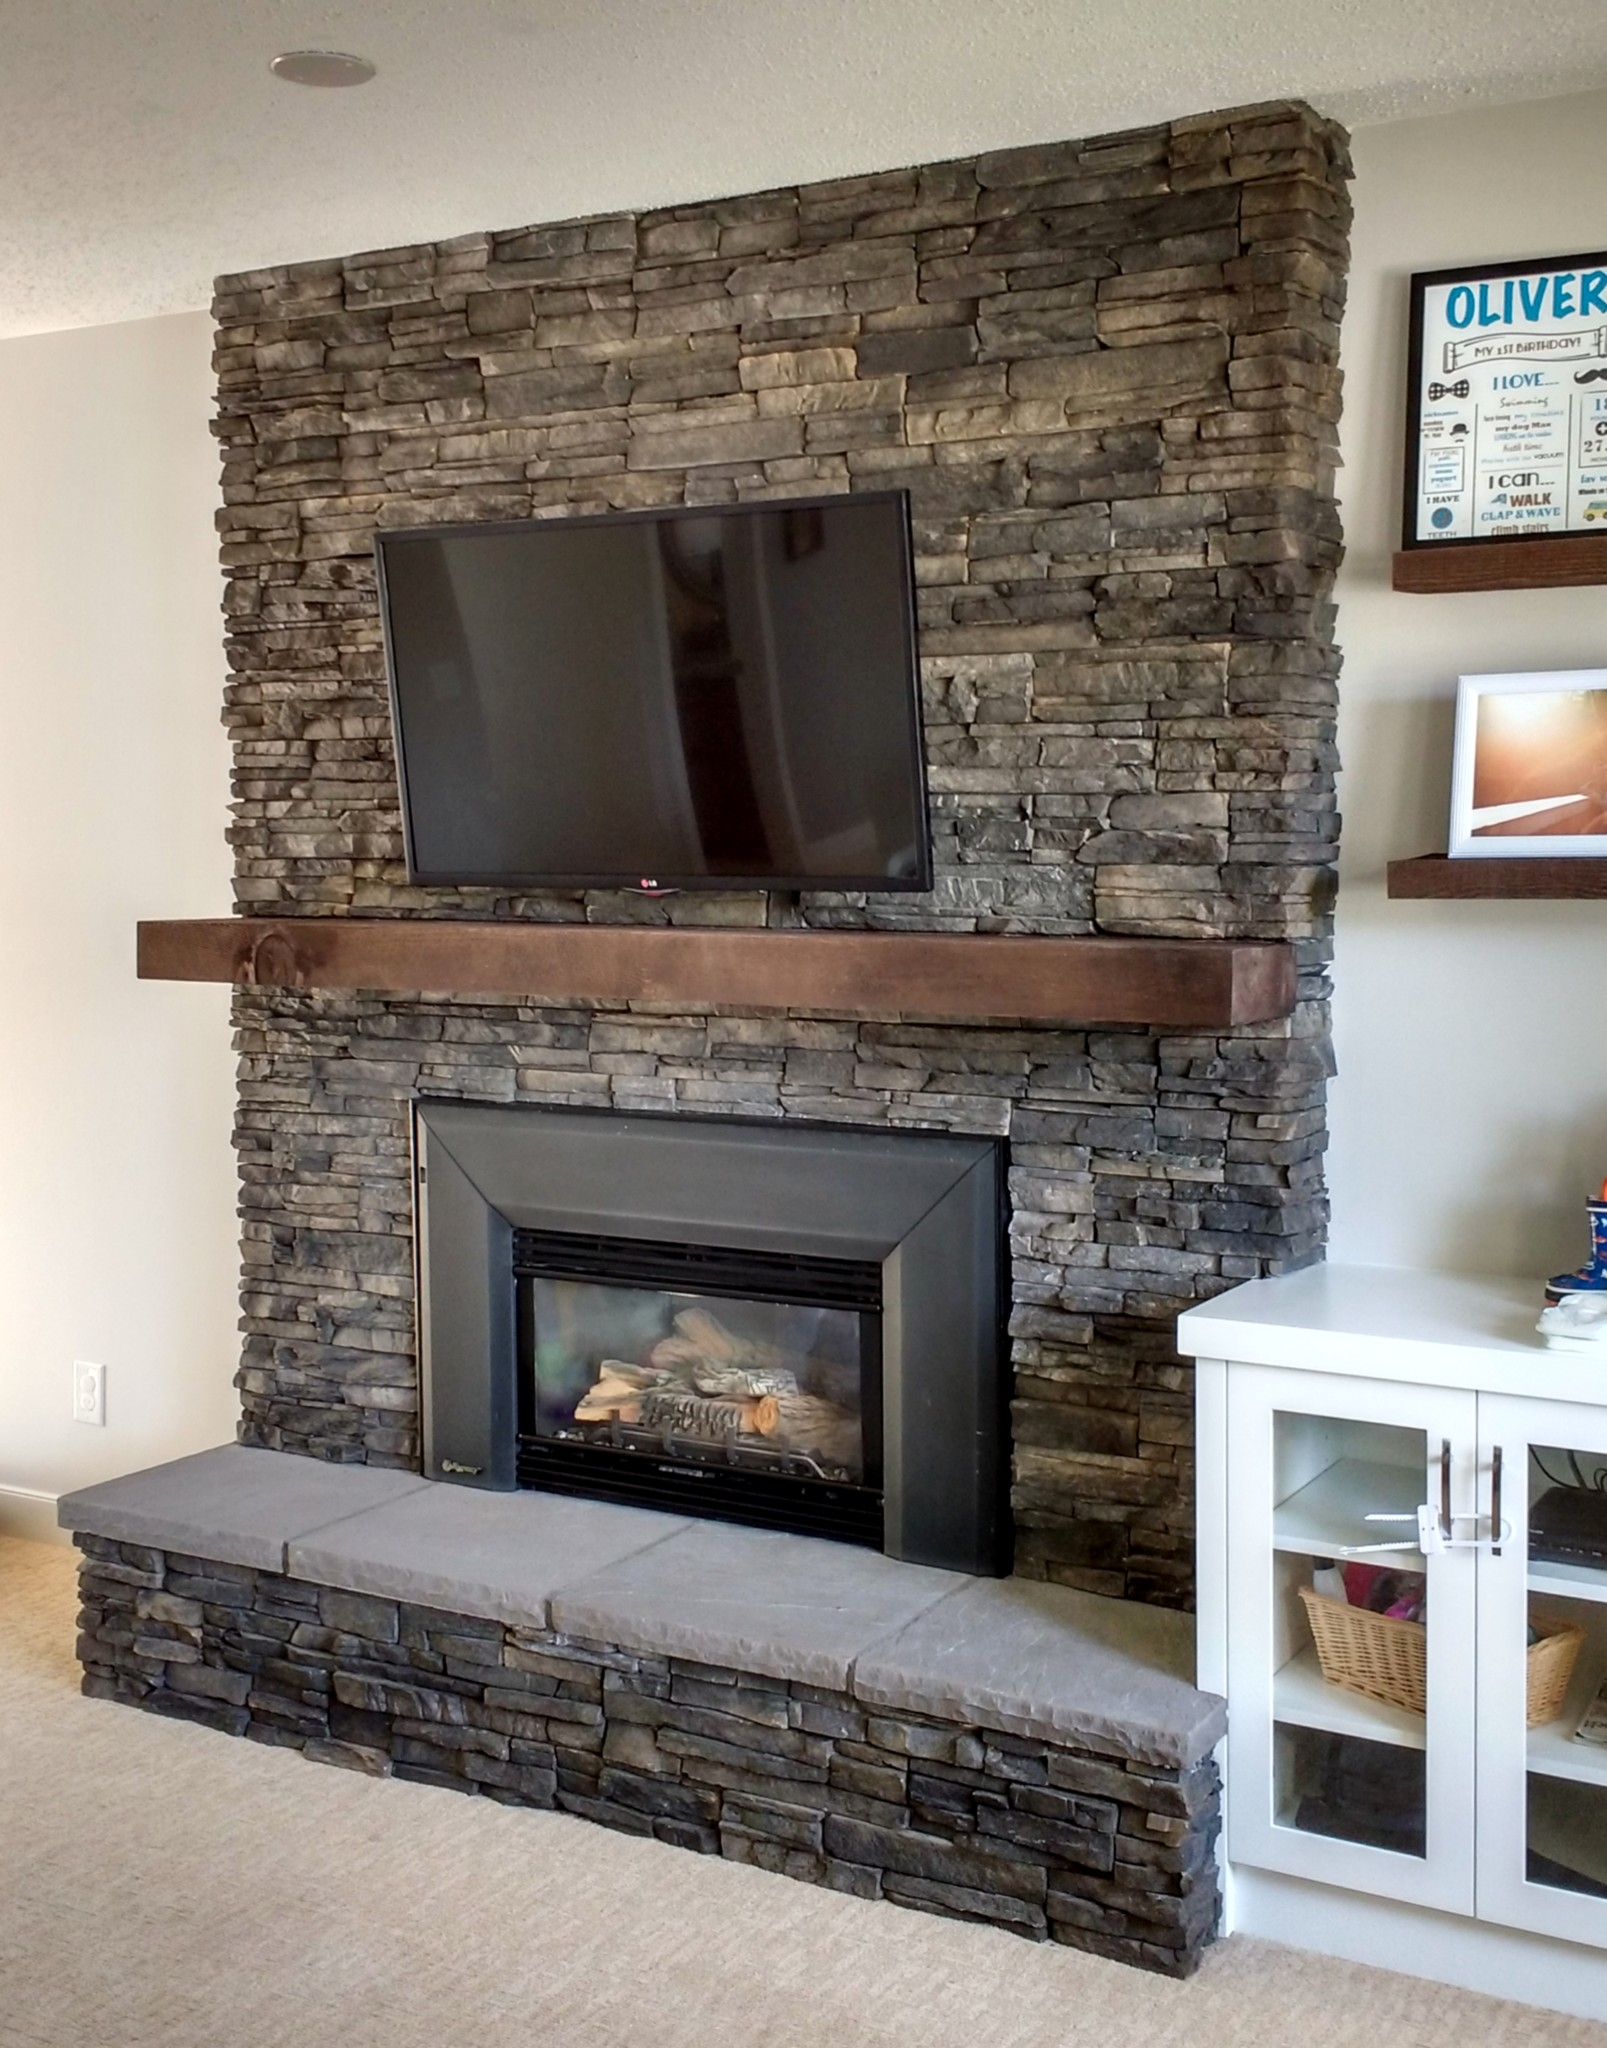 Fireplace With Hearth Brick Cover Up